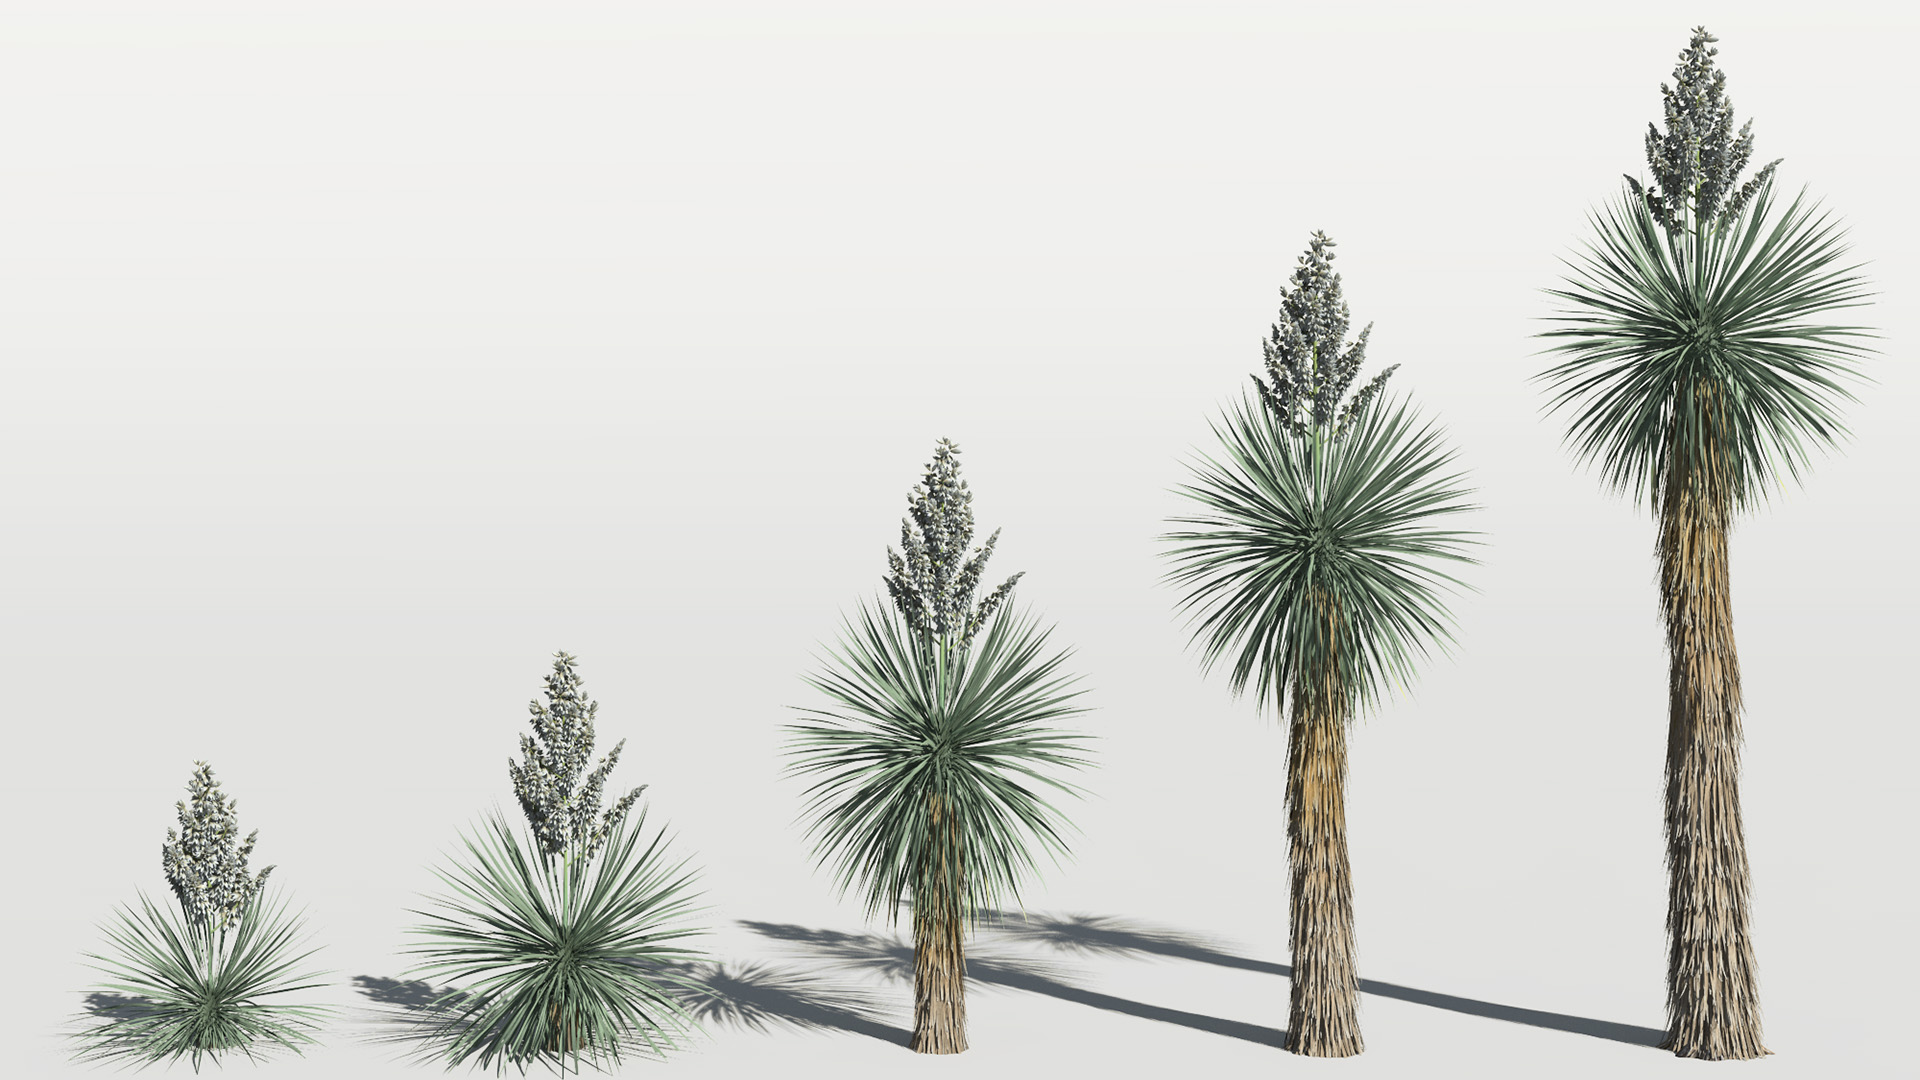 3D model of the Beaked yucca Yucca rostrata maturity variations